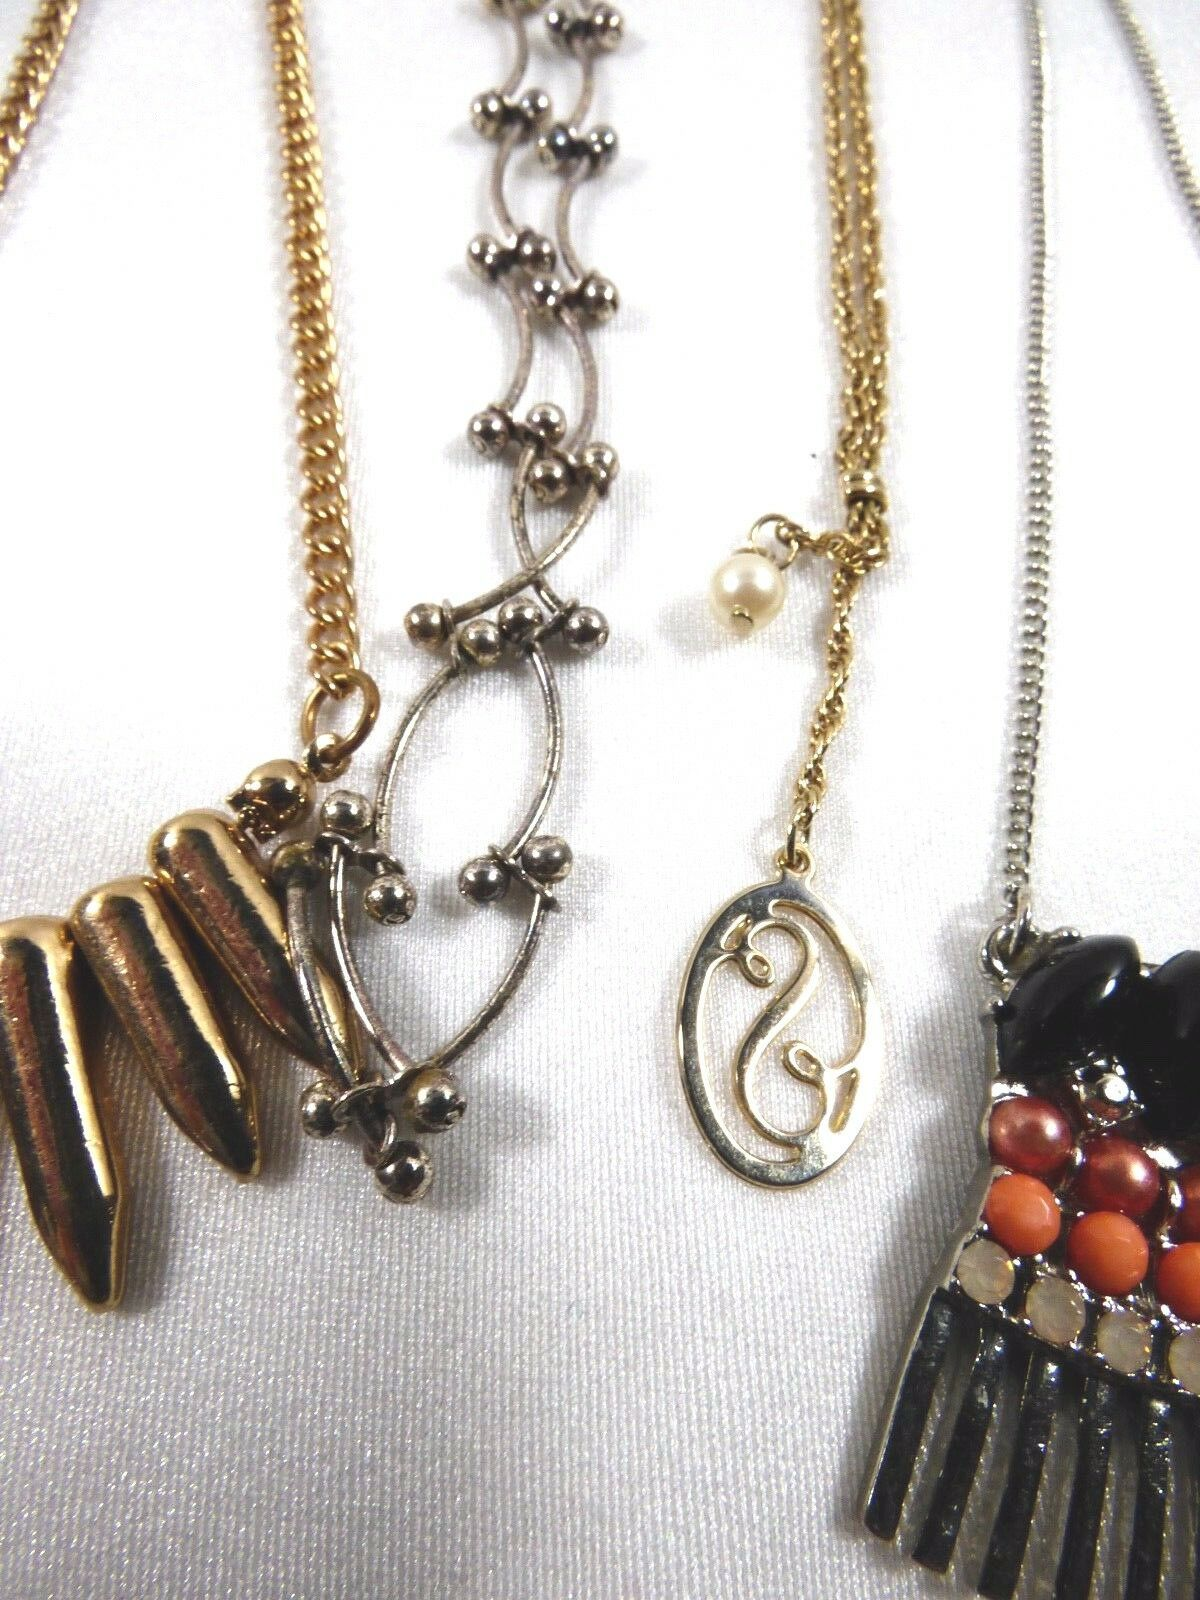 Lot of 9 multi style Fashion link chains charm Pendant Necklaces